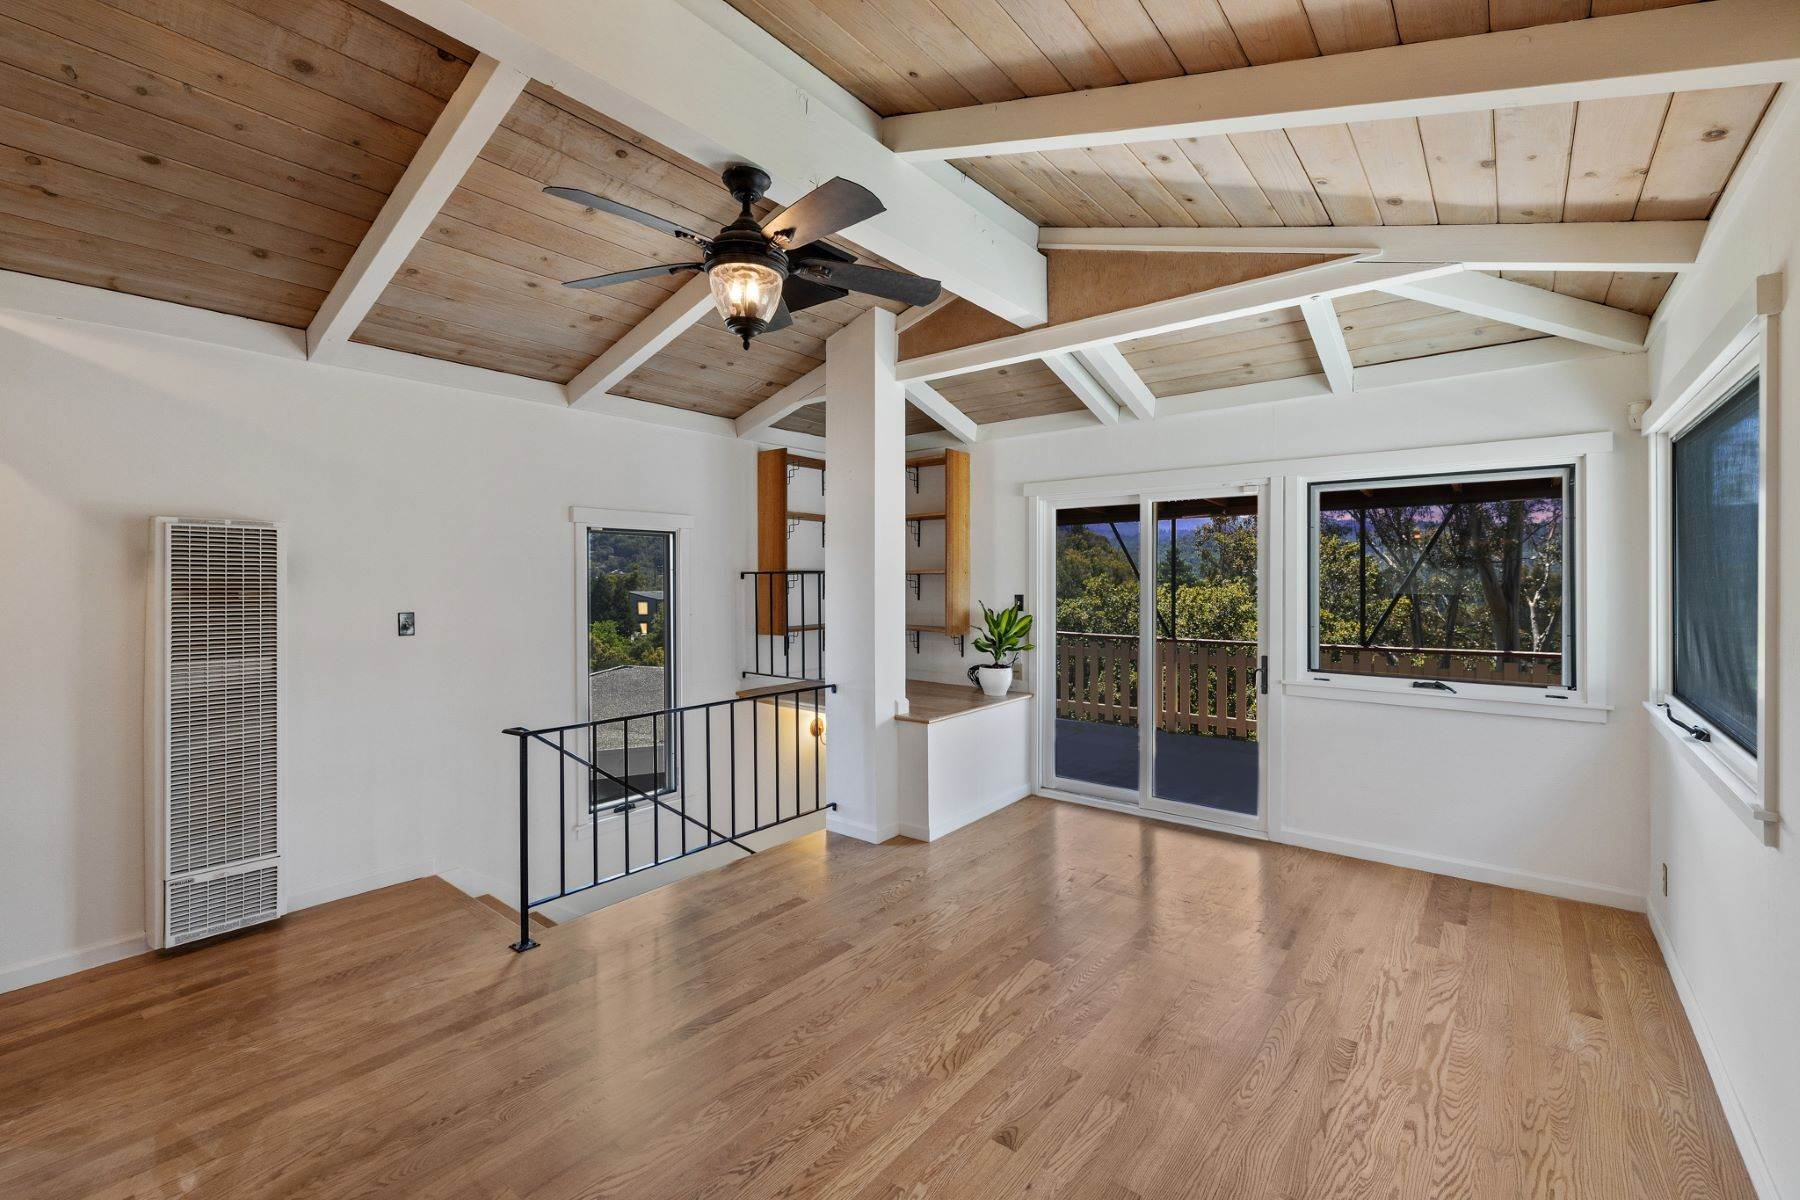 32. Single Family Homes for Sale at Adorable Fairfax Cottage 148 Ridgeway Avenue Fairfax, California 94930 United States